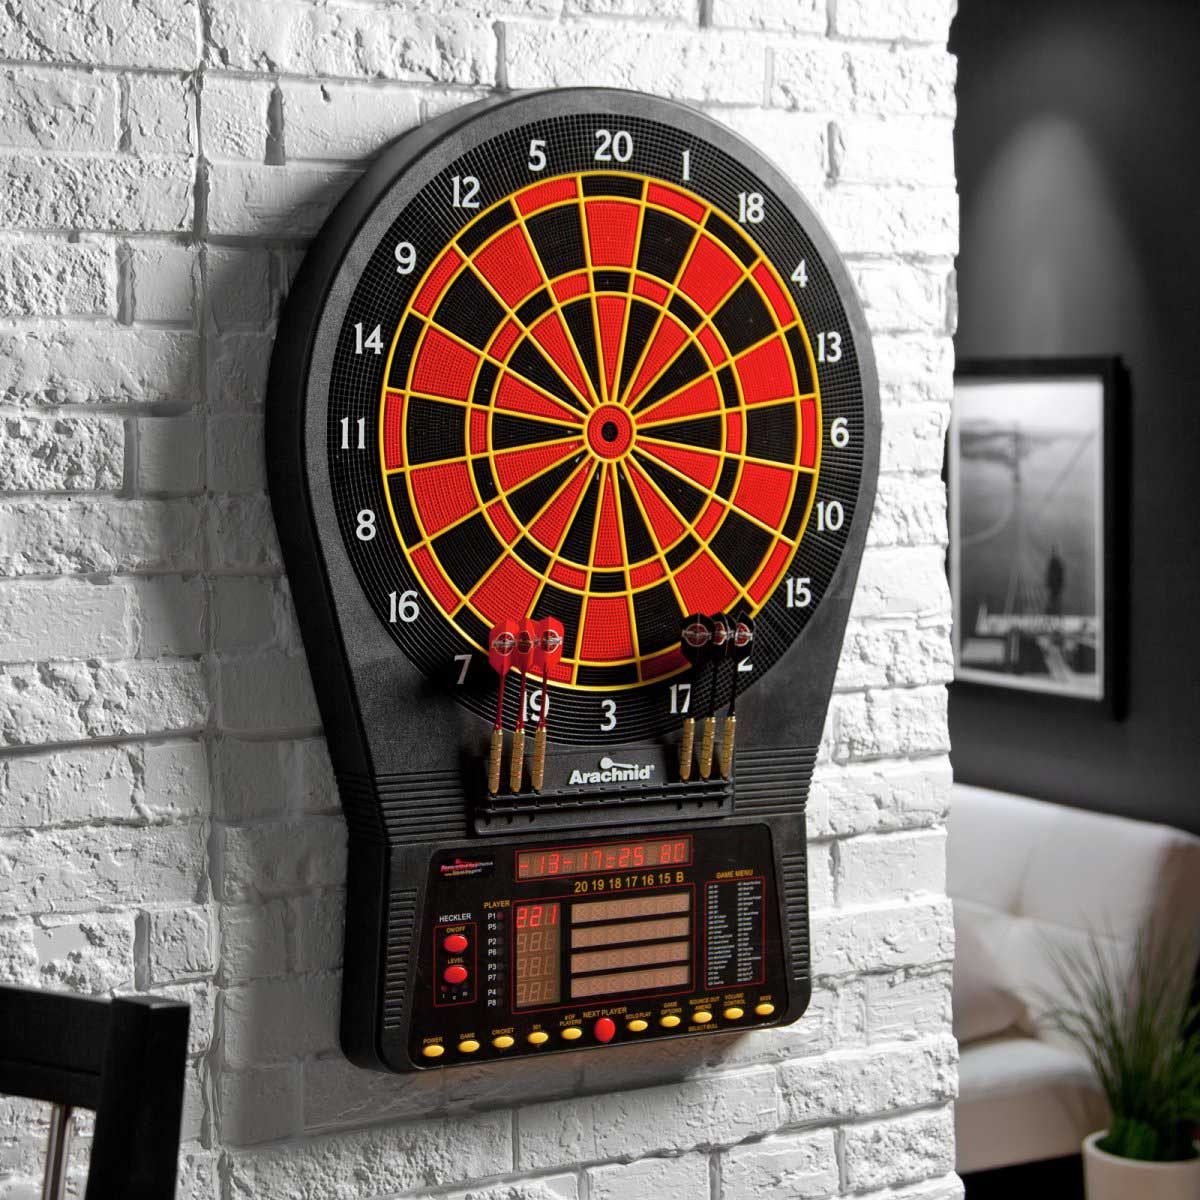 Arachnid CricketPro 800 Talking Electronic Dart Board w